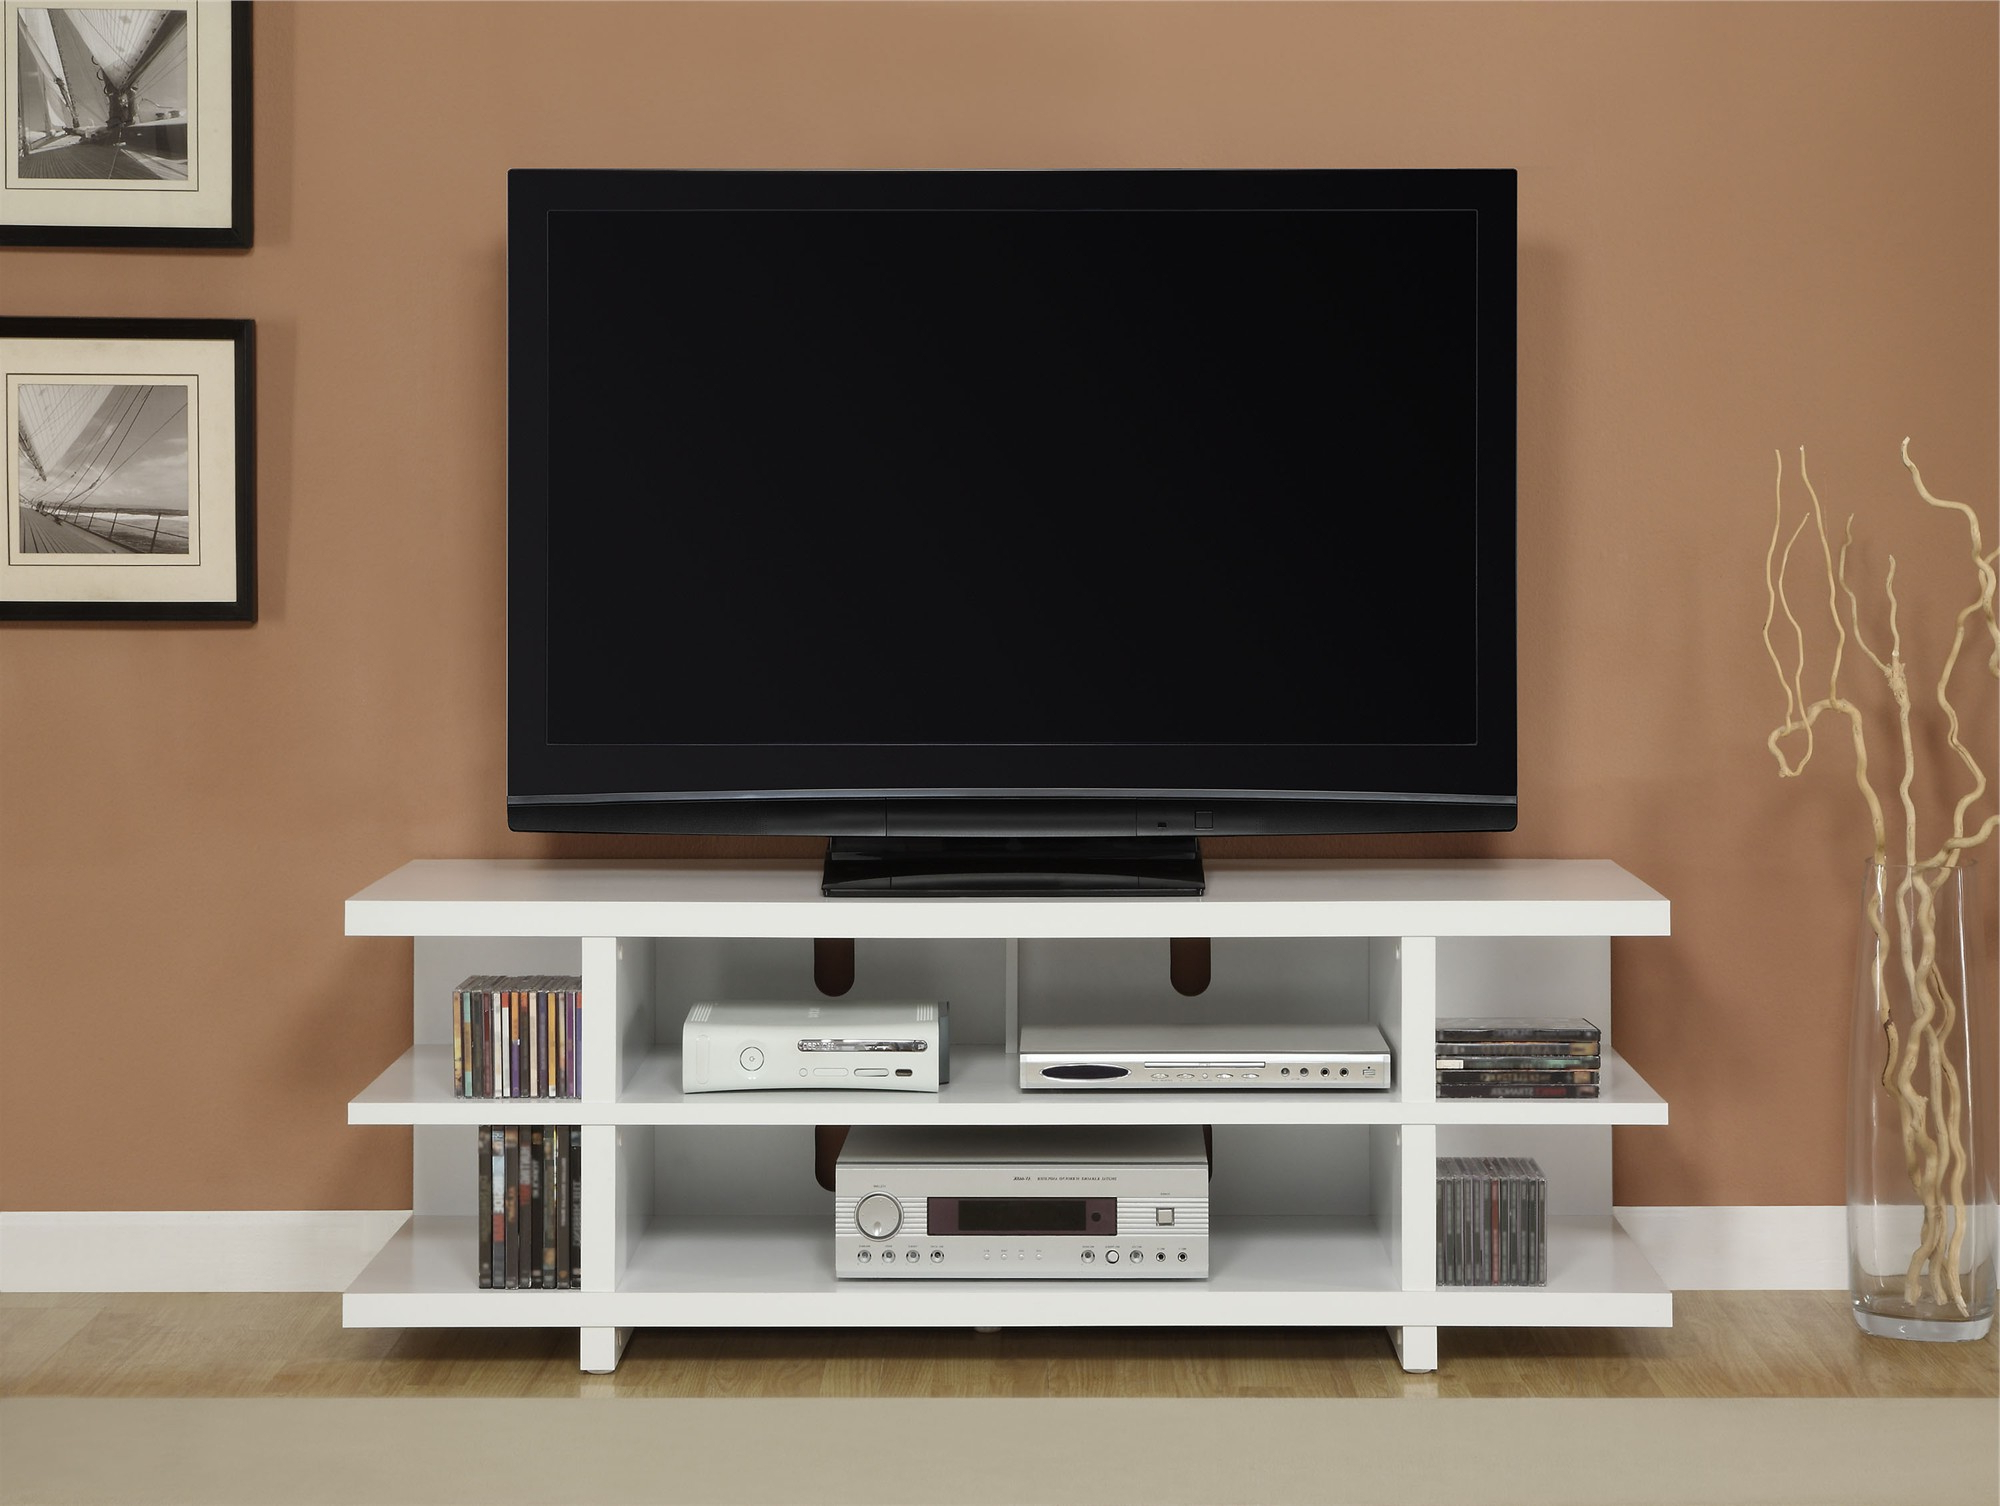 Contemporary Tv Cabinets For Flat Screens With Regard To Widely Used Tv Stand 55 Inch Walmart Cheap Tall Corner Flat Screen Stands Wood (Gallery 12 of 20)